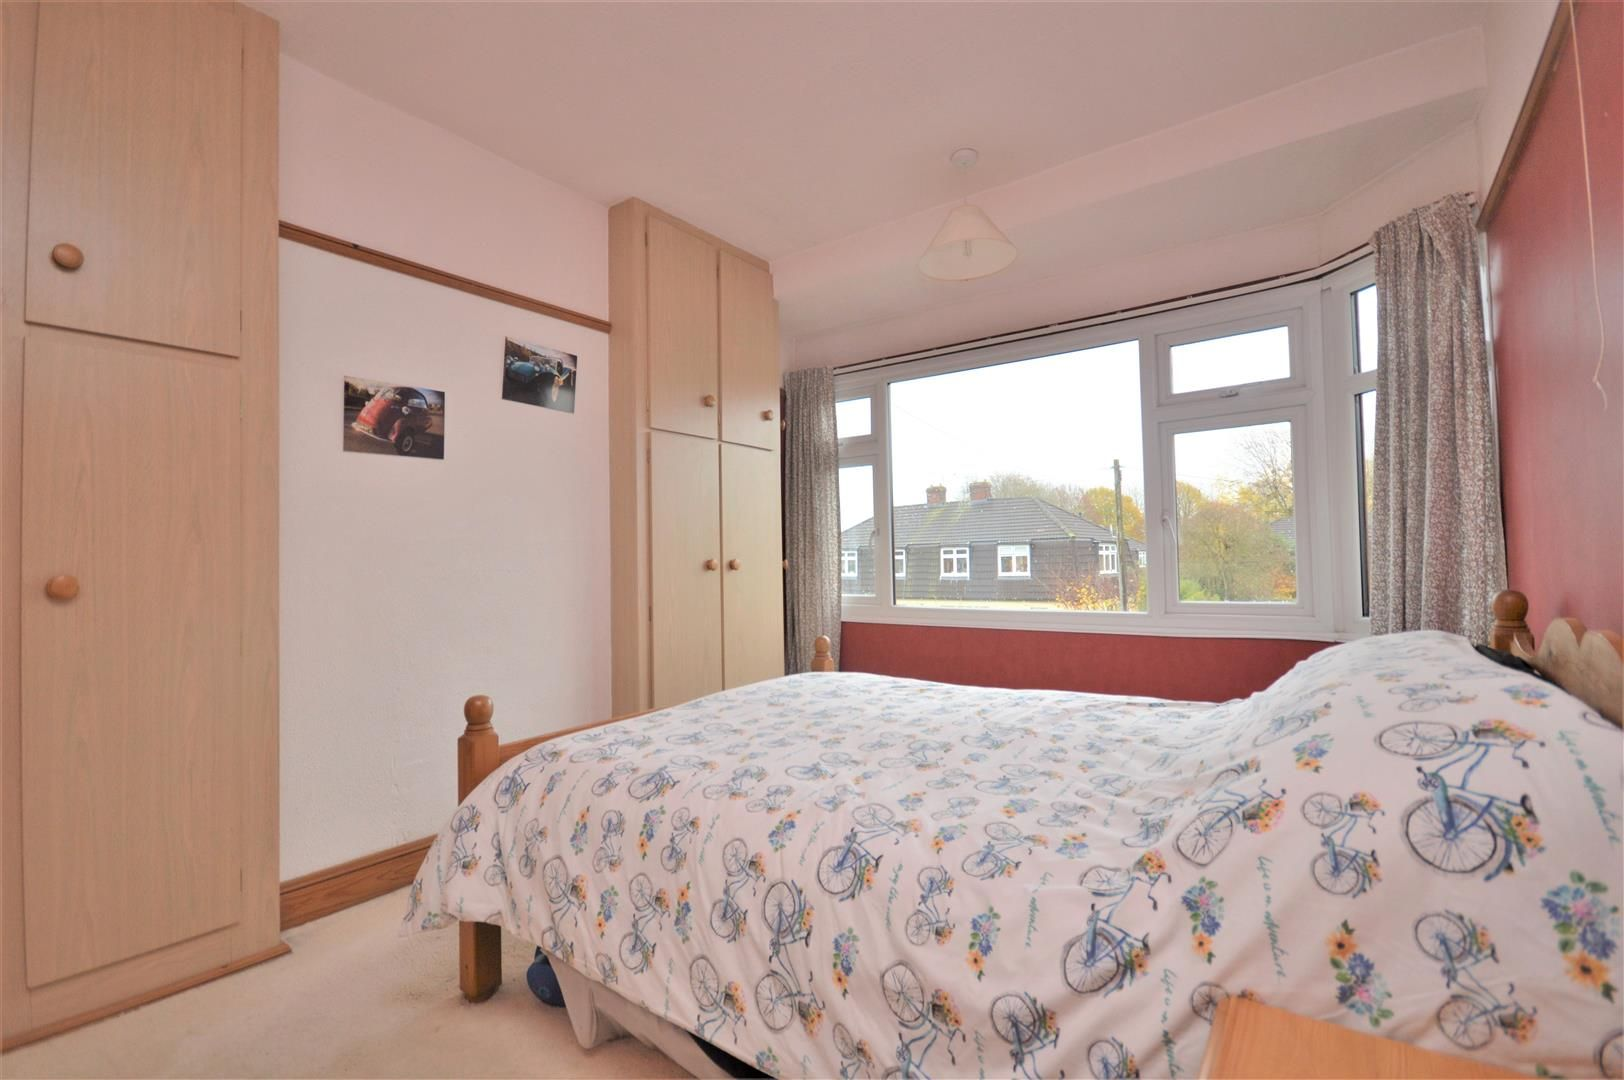 3 bed semi-detached for sale in Hereford 8